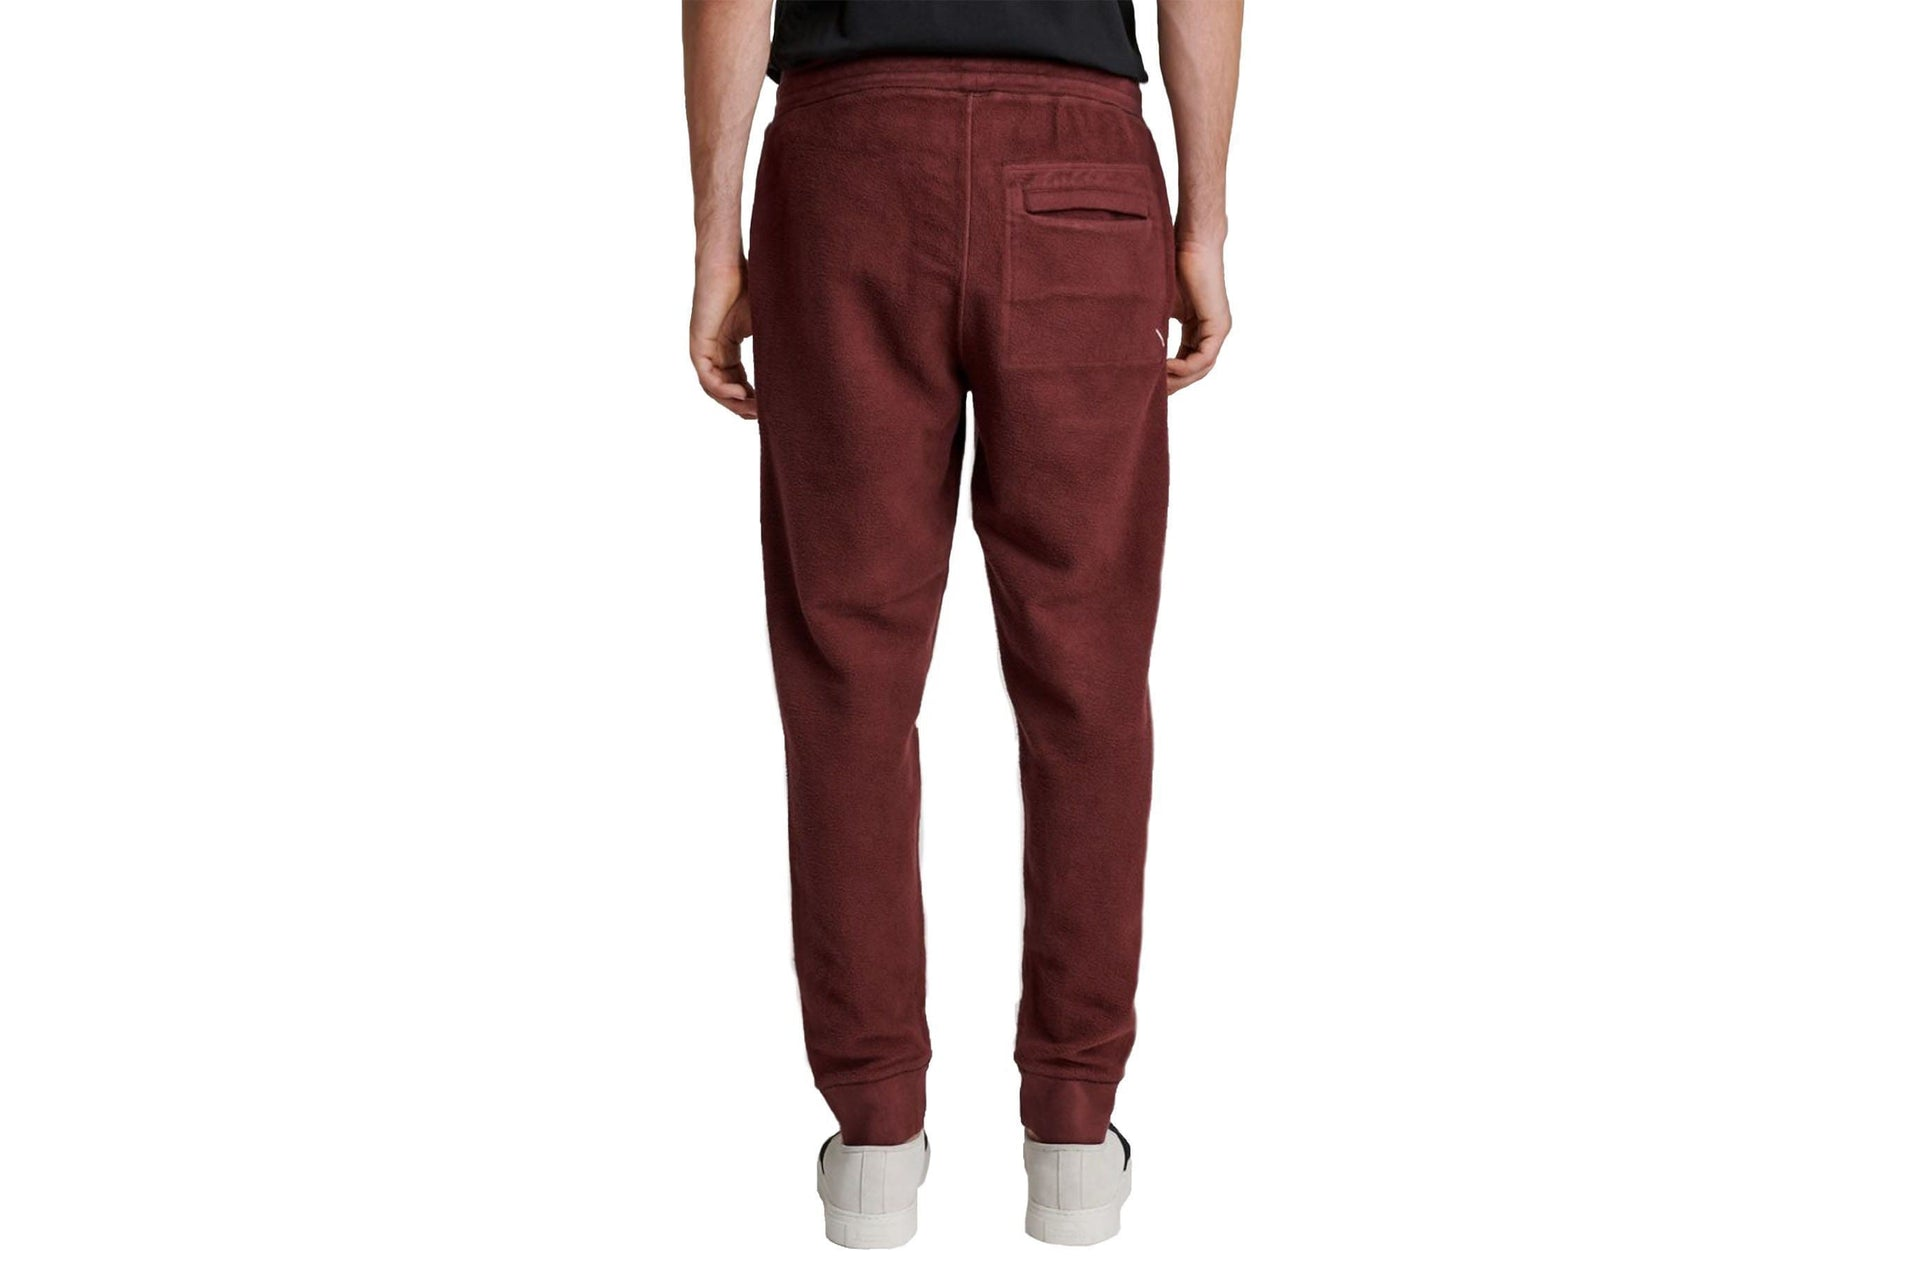 KEN SWEAT PANT - M41904KN01 MENS SOFTGOODS SATURDAYS NYC